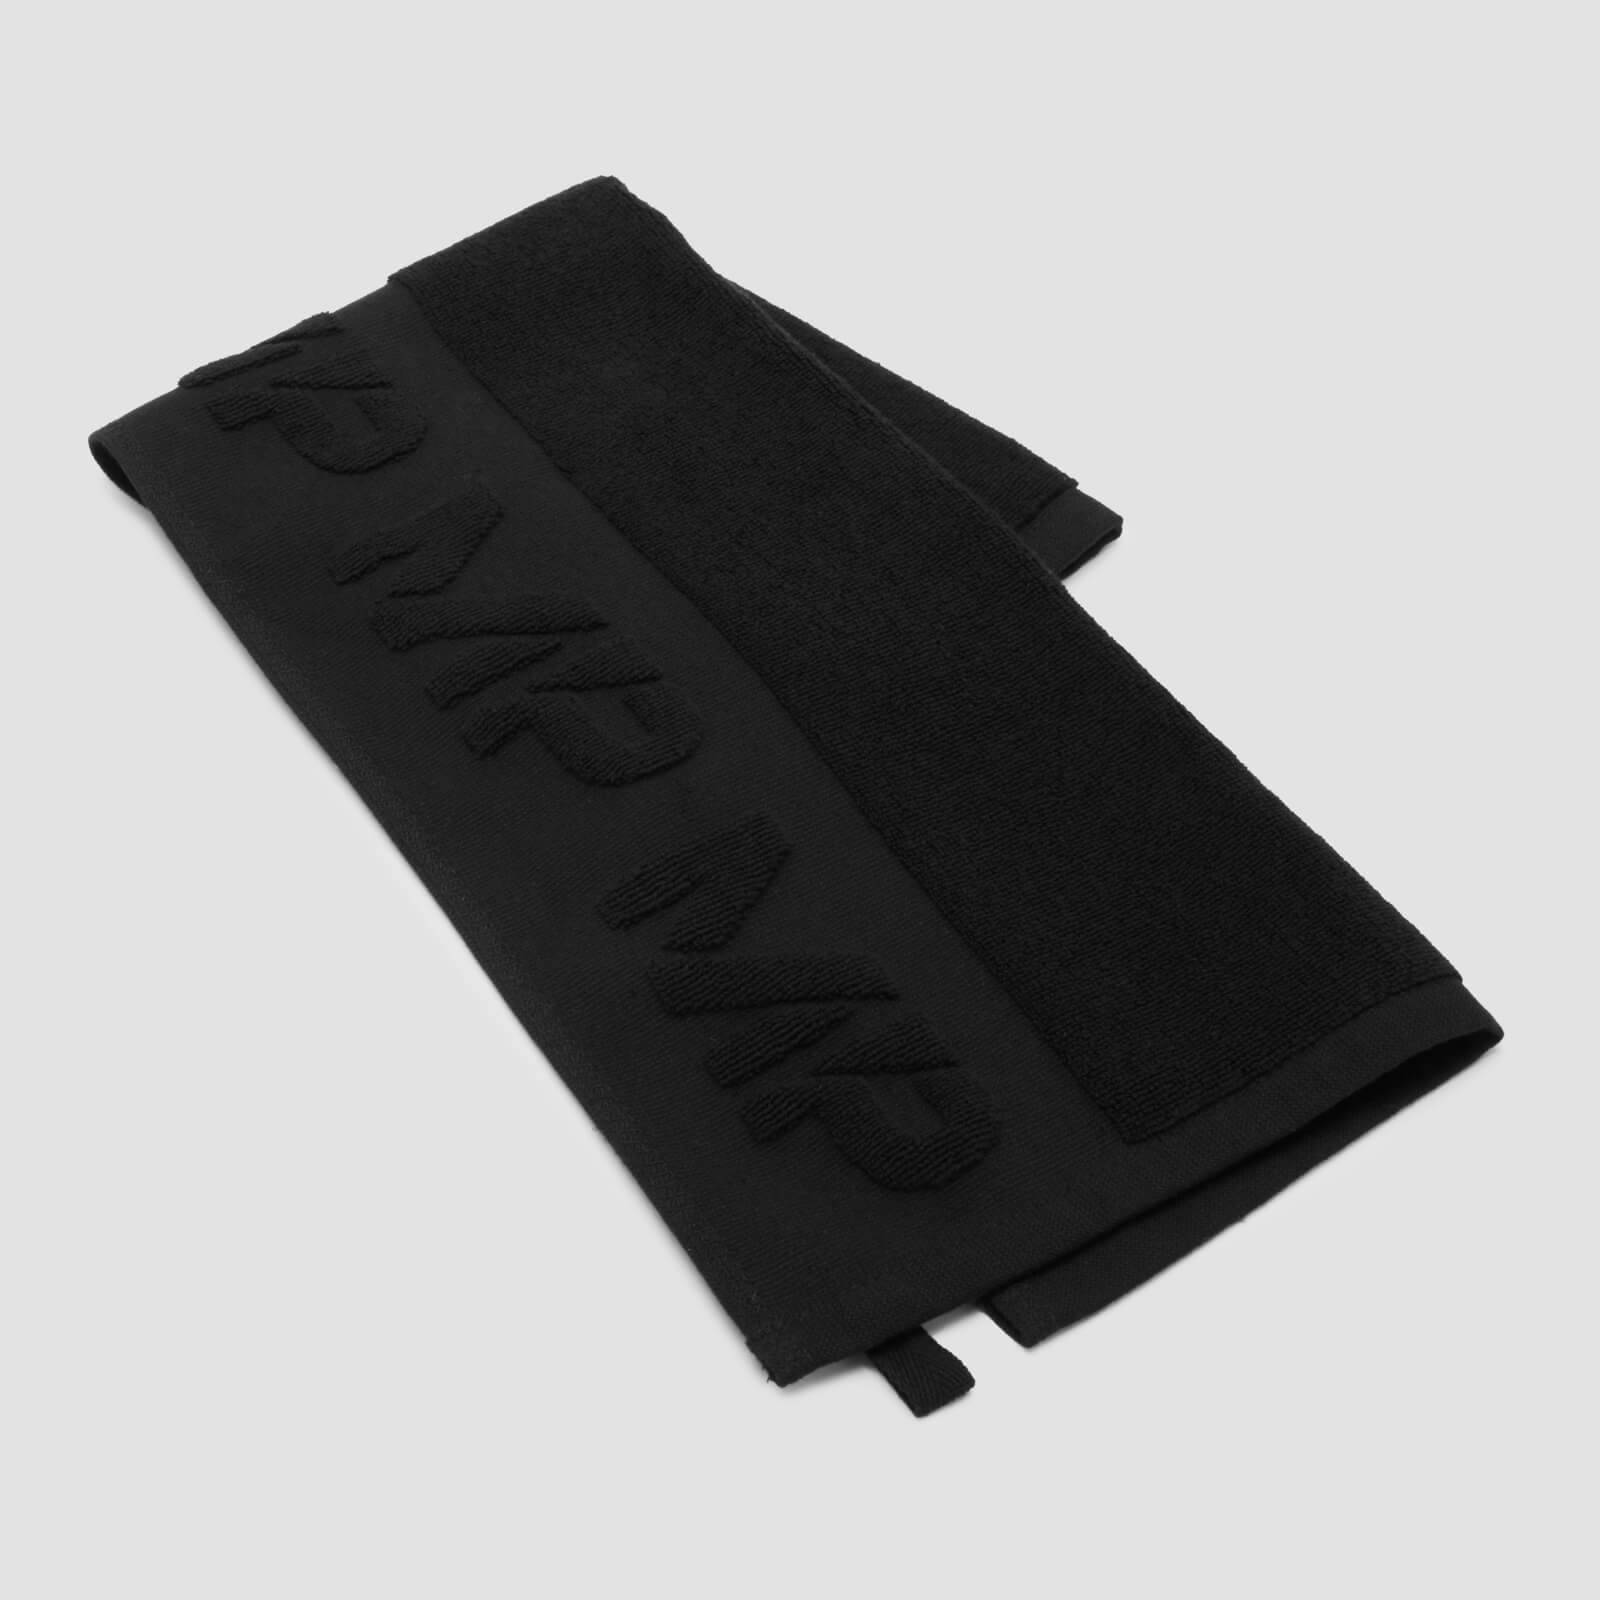 Myprotein MP Hand Towel - Black